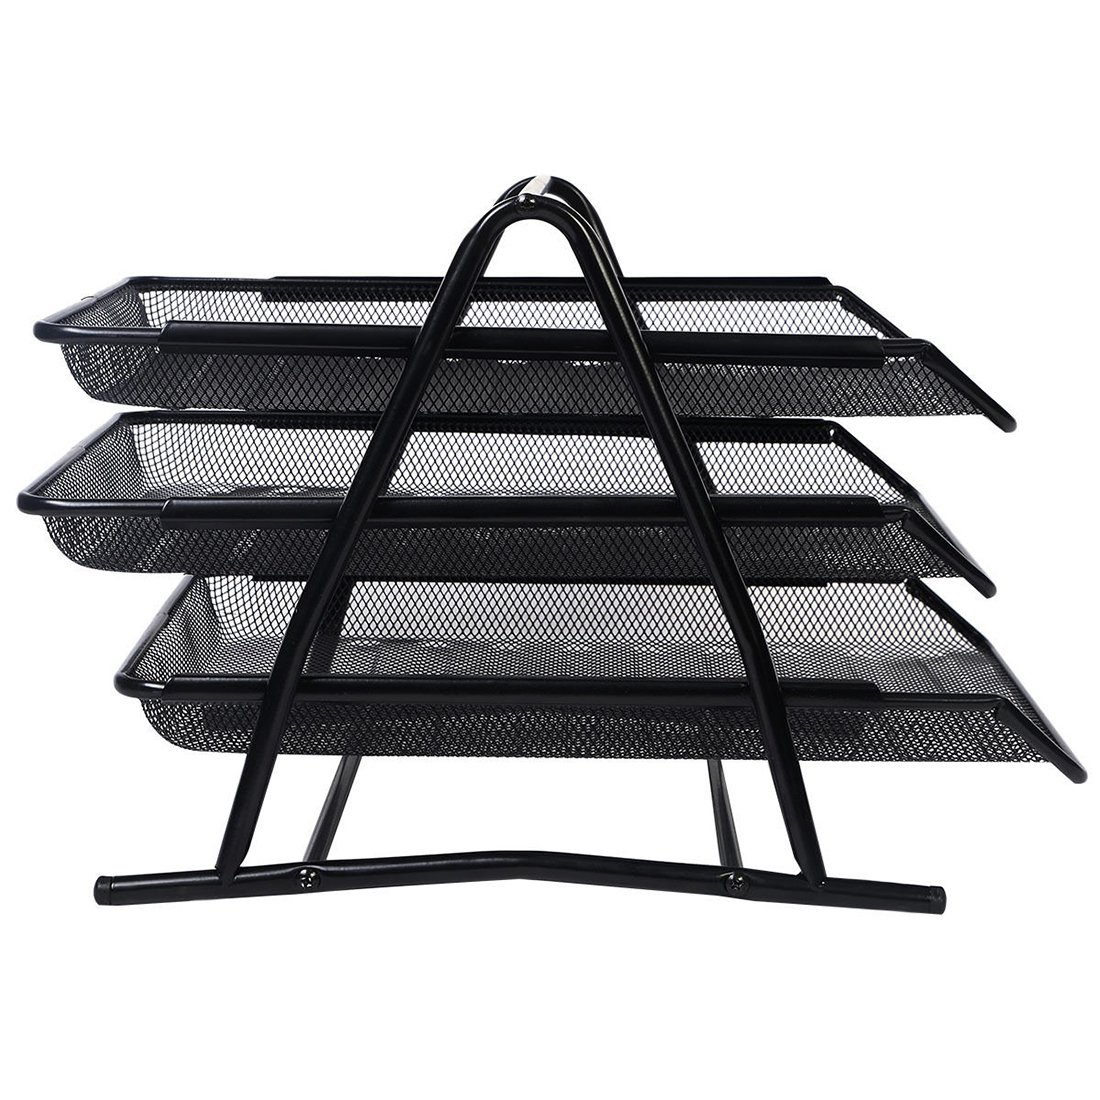 KathShop Metal Document Trays A4 Paper Office Mesh Document File Paper Letter Tray Organiser Holder